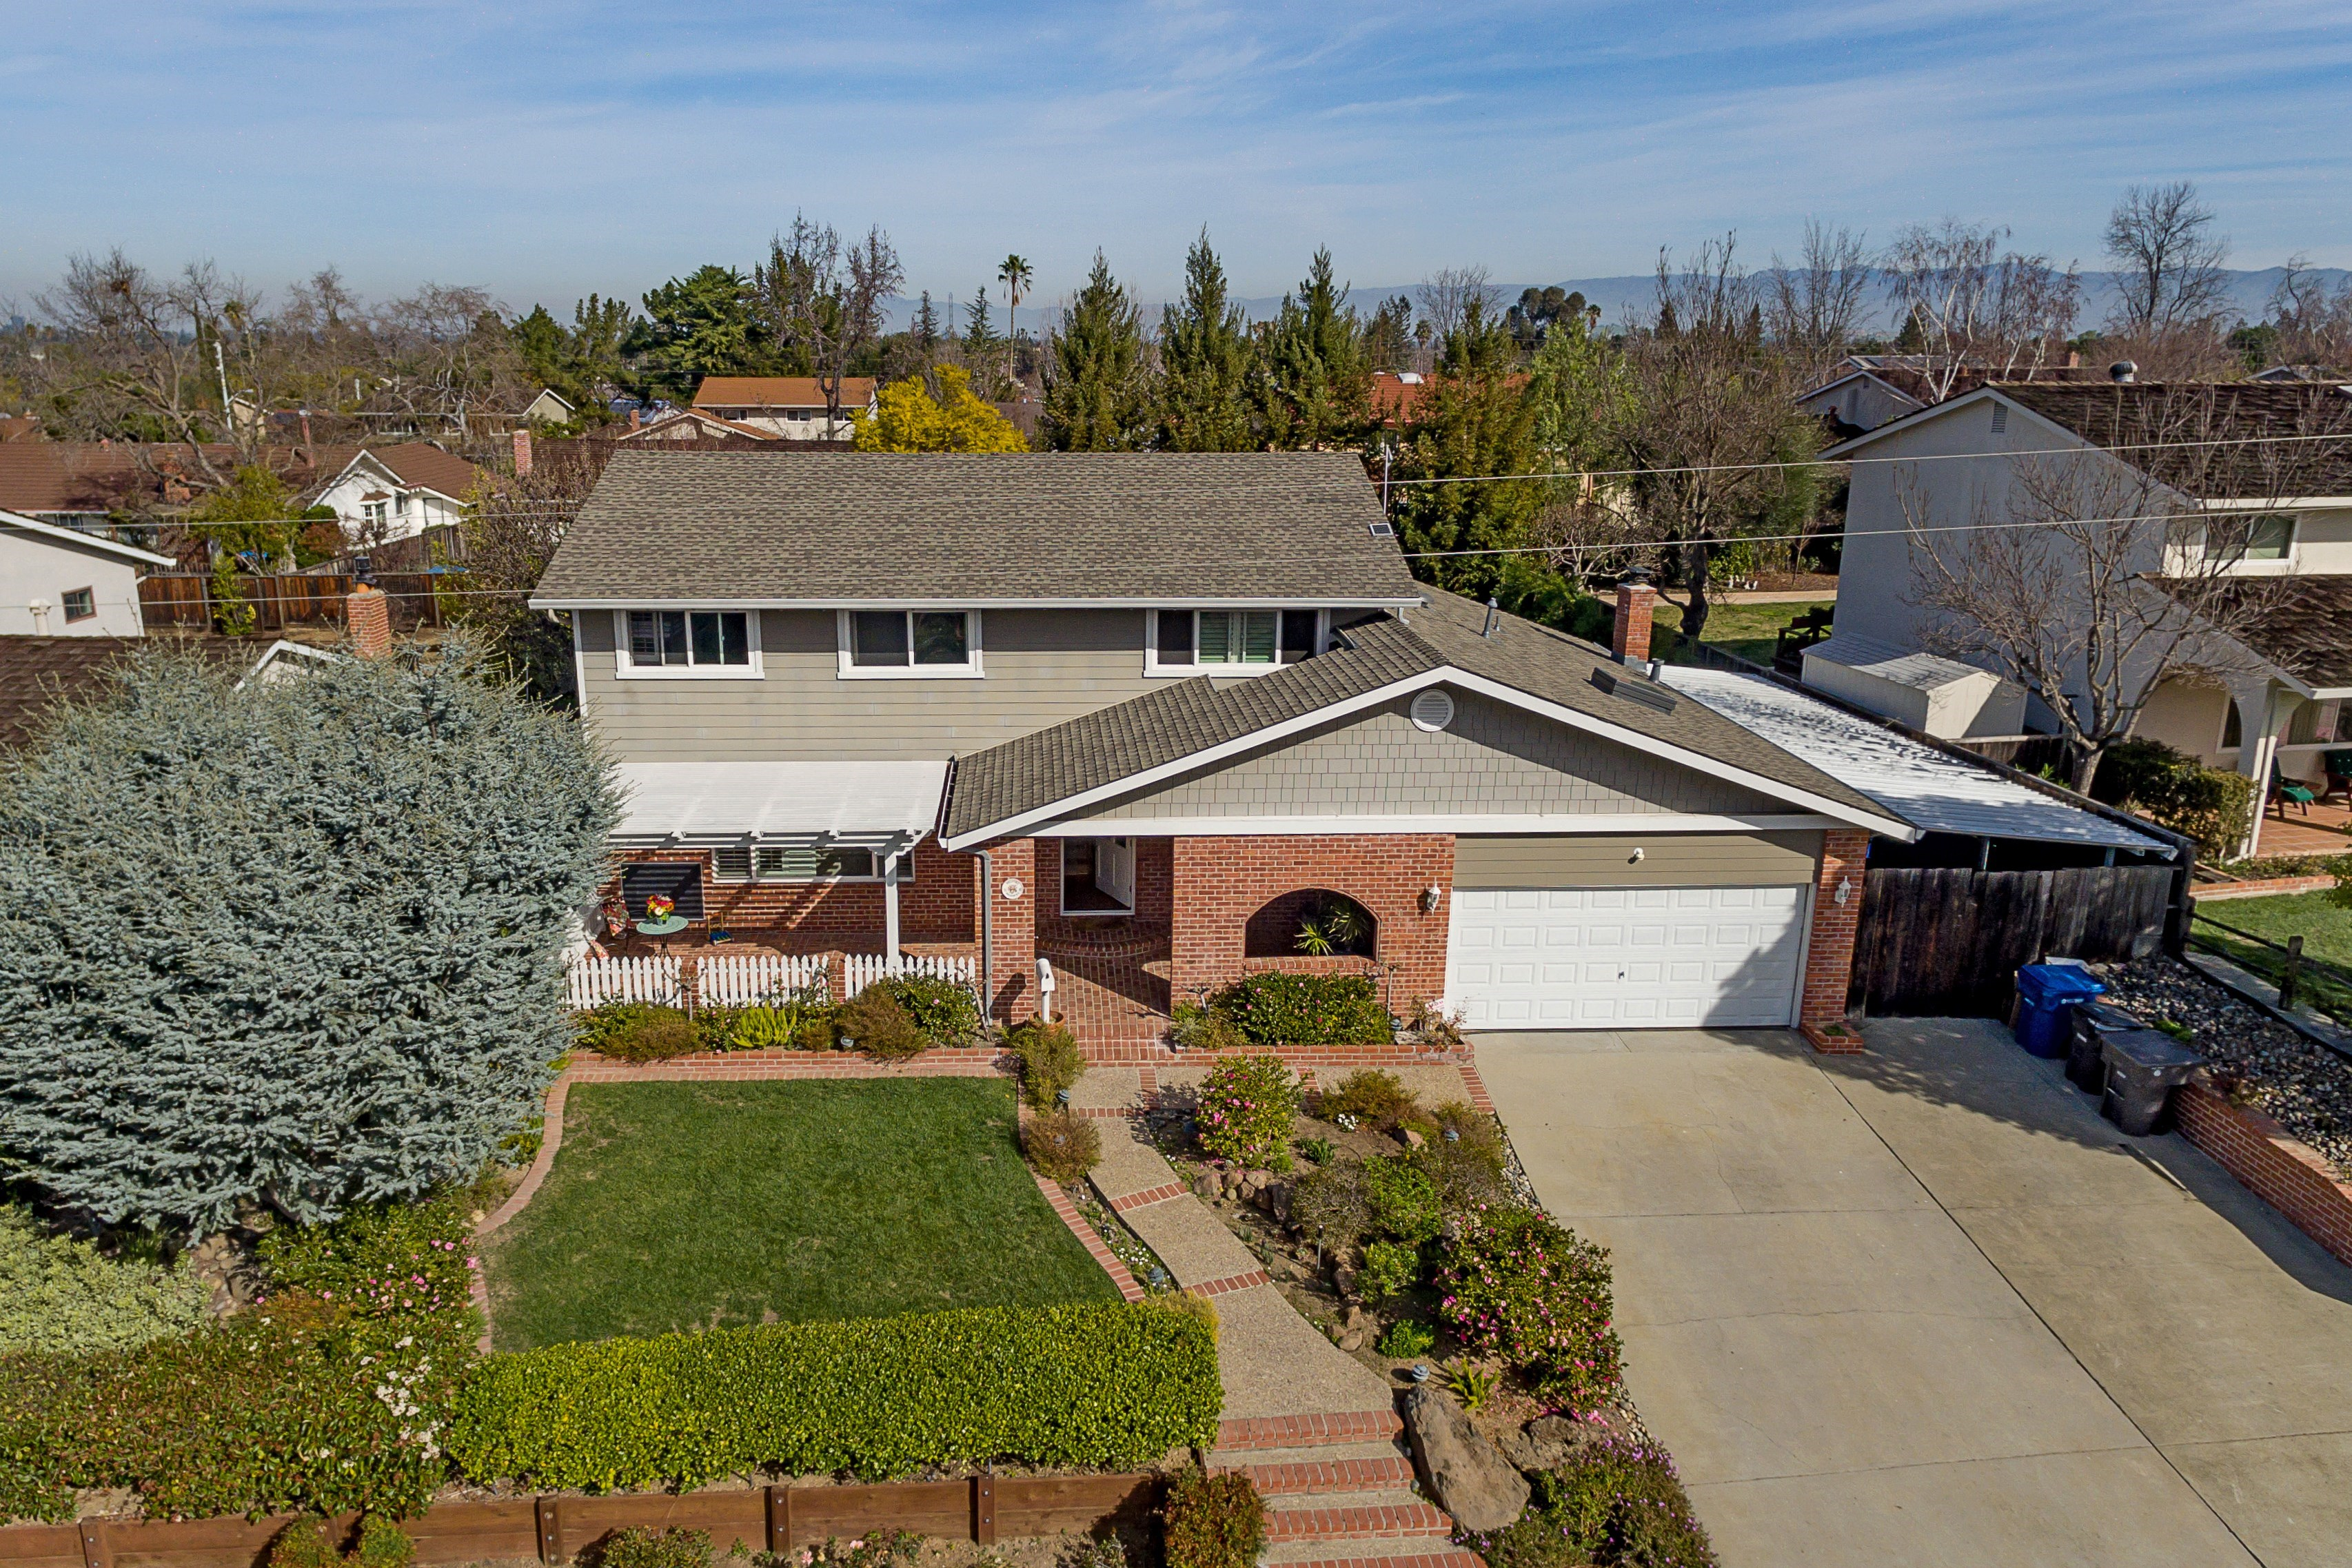 002 Aerial - Exquisite, expansive, remodeled Belwood home - 127 Belhaven Drive, Los Gatos